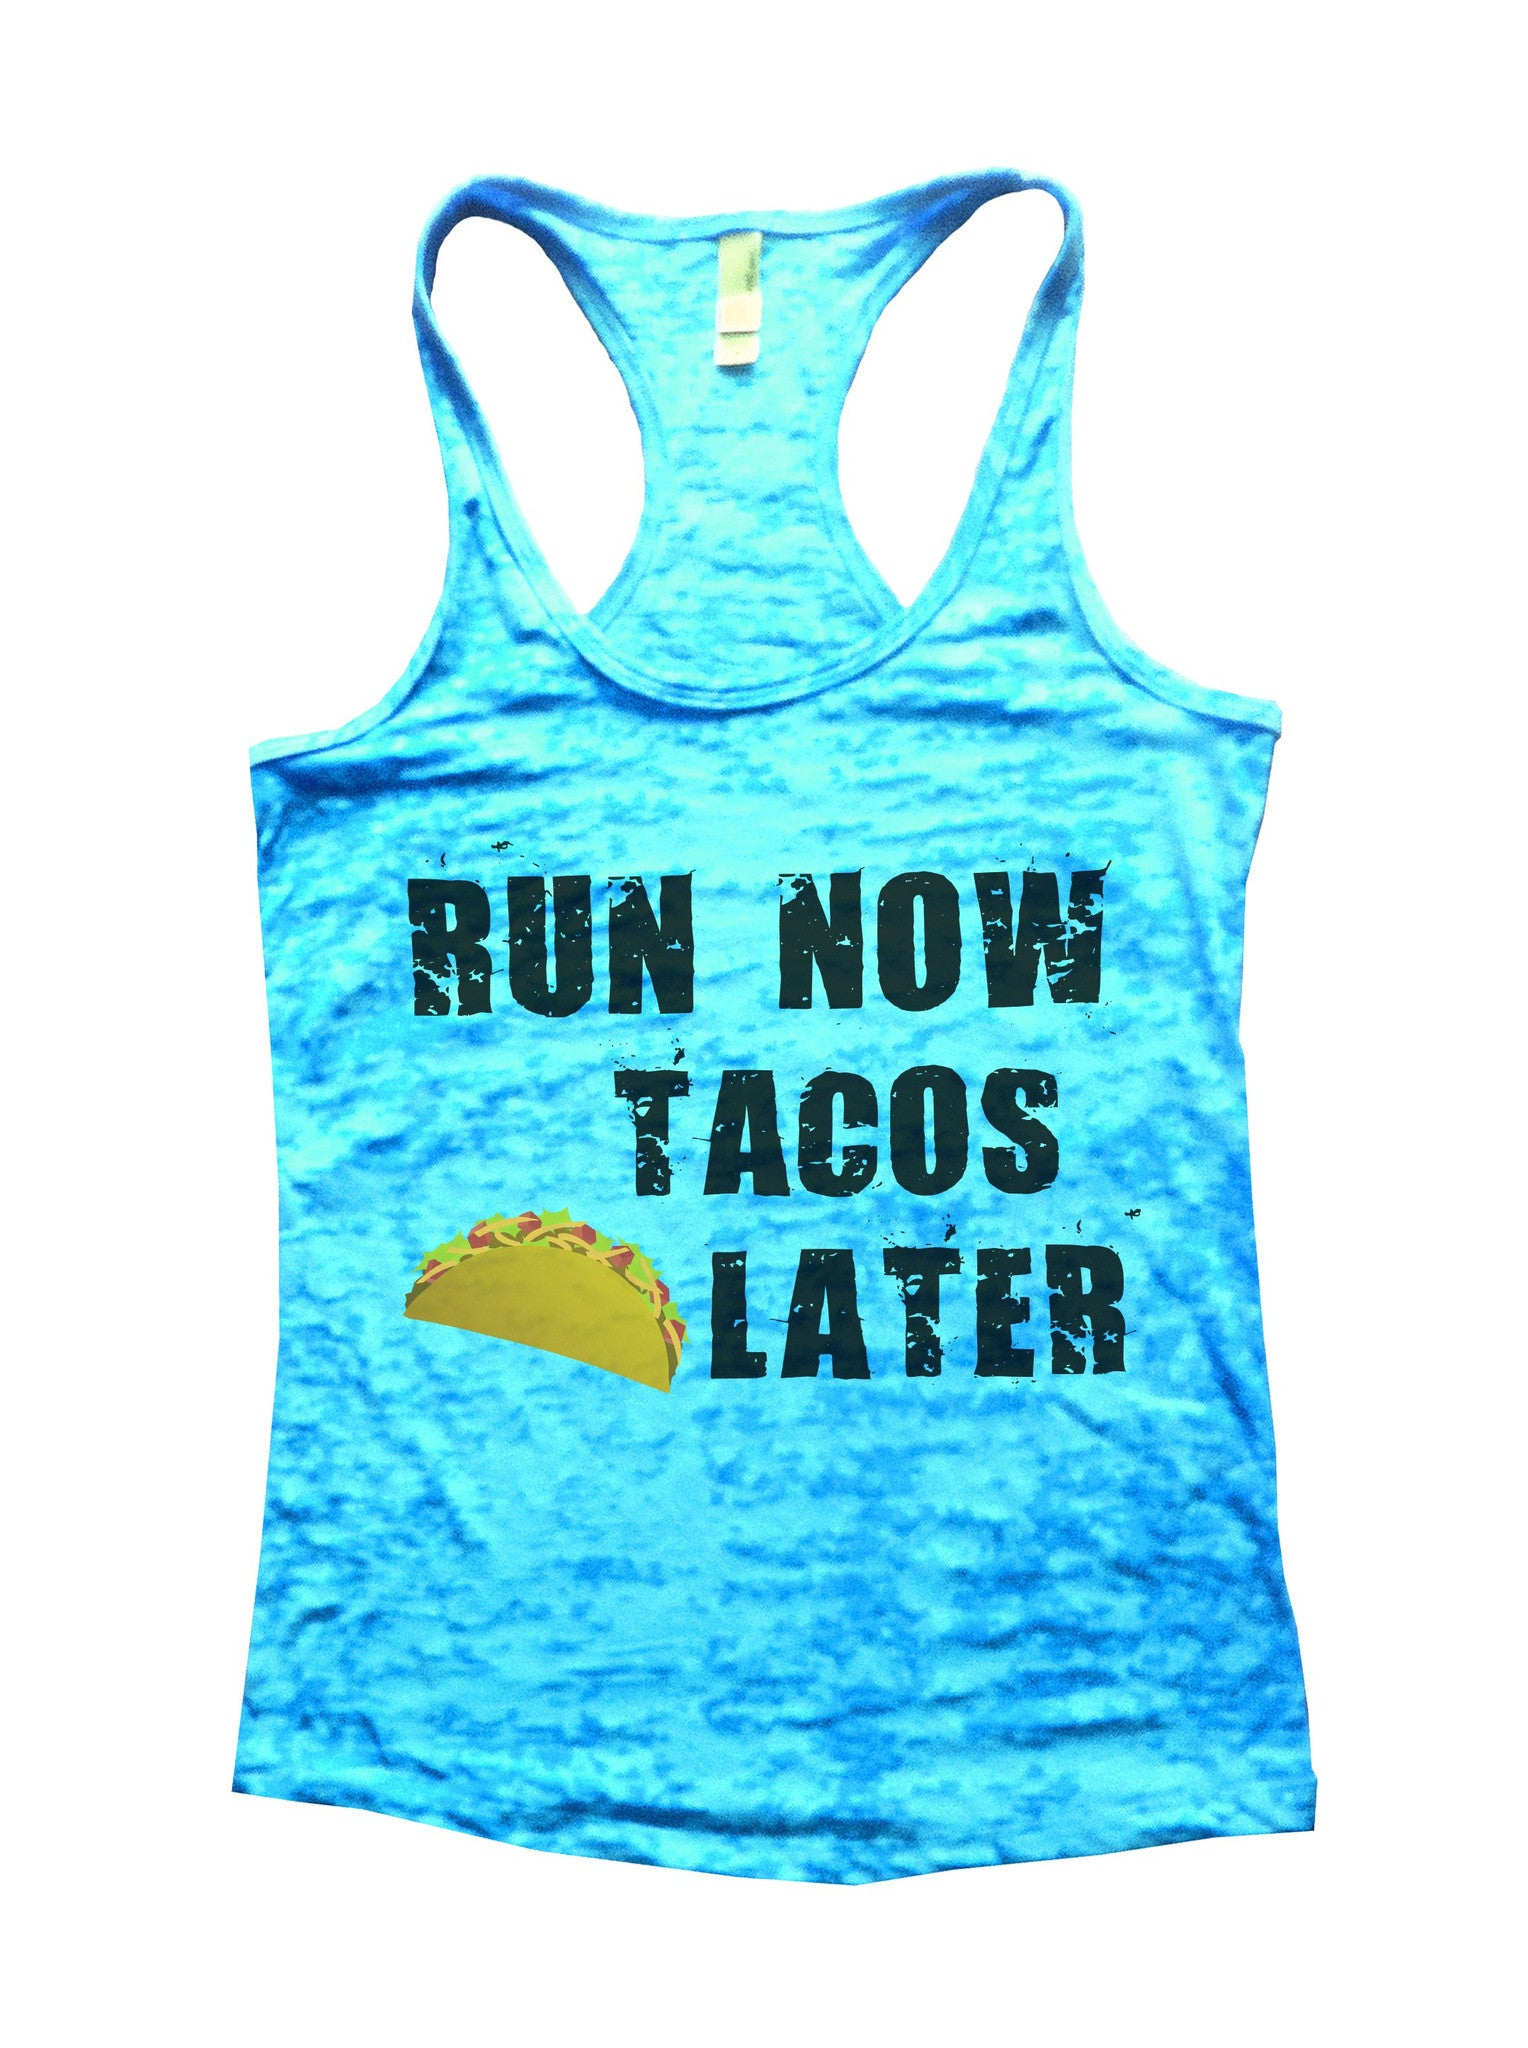 Run Now Tacos Later Burnout Tank Top By BurnoutTankTops.com - 650 - Funny Shirts Tank Tops Burnouts and Triblends  - 1